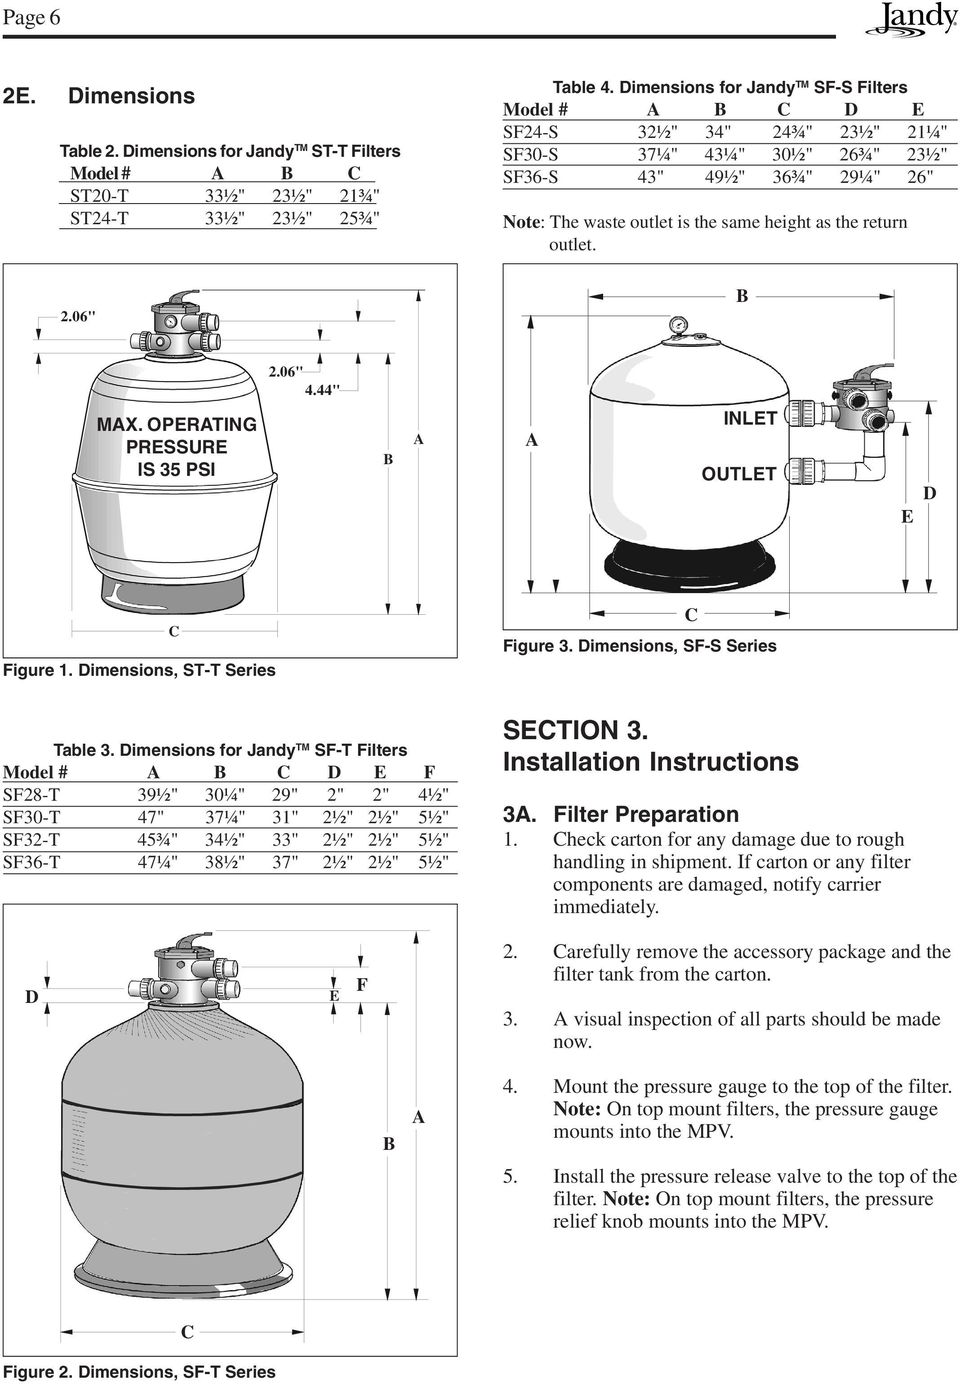 Sand Filter Installation And Operation Manual Warning Pdf Jandy Actuator Wiring Diagram Return Outlet B 206 444 Max Operating Pressure Is 35 Psi A